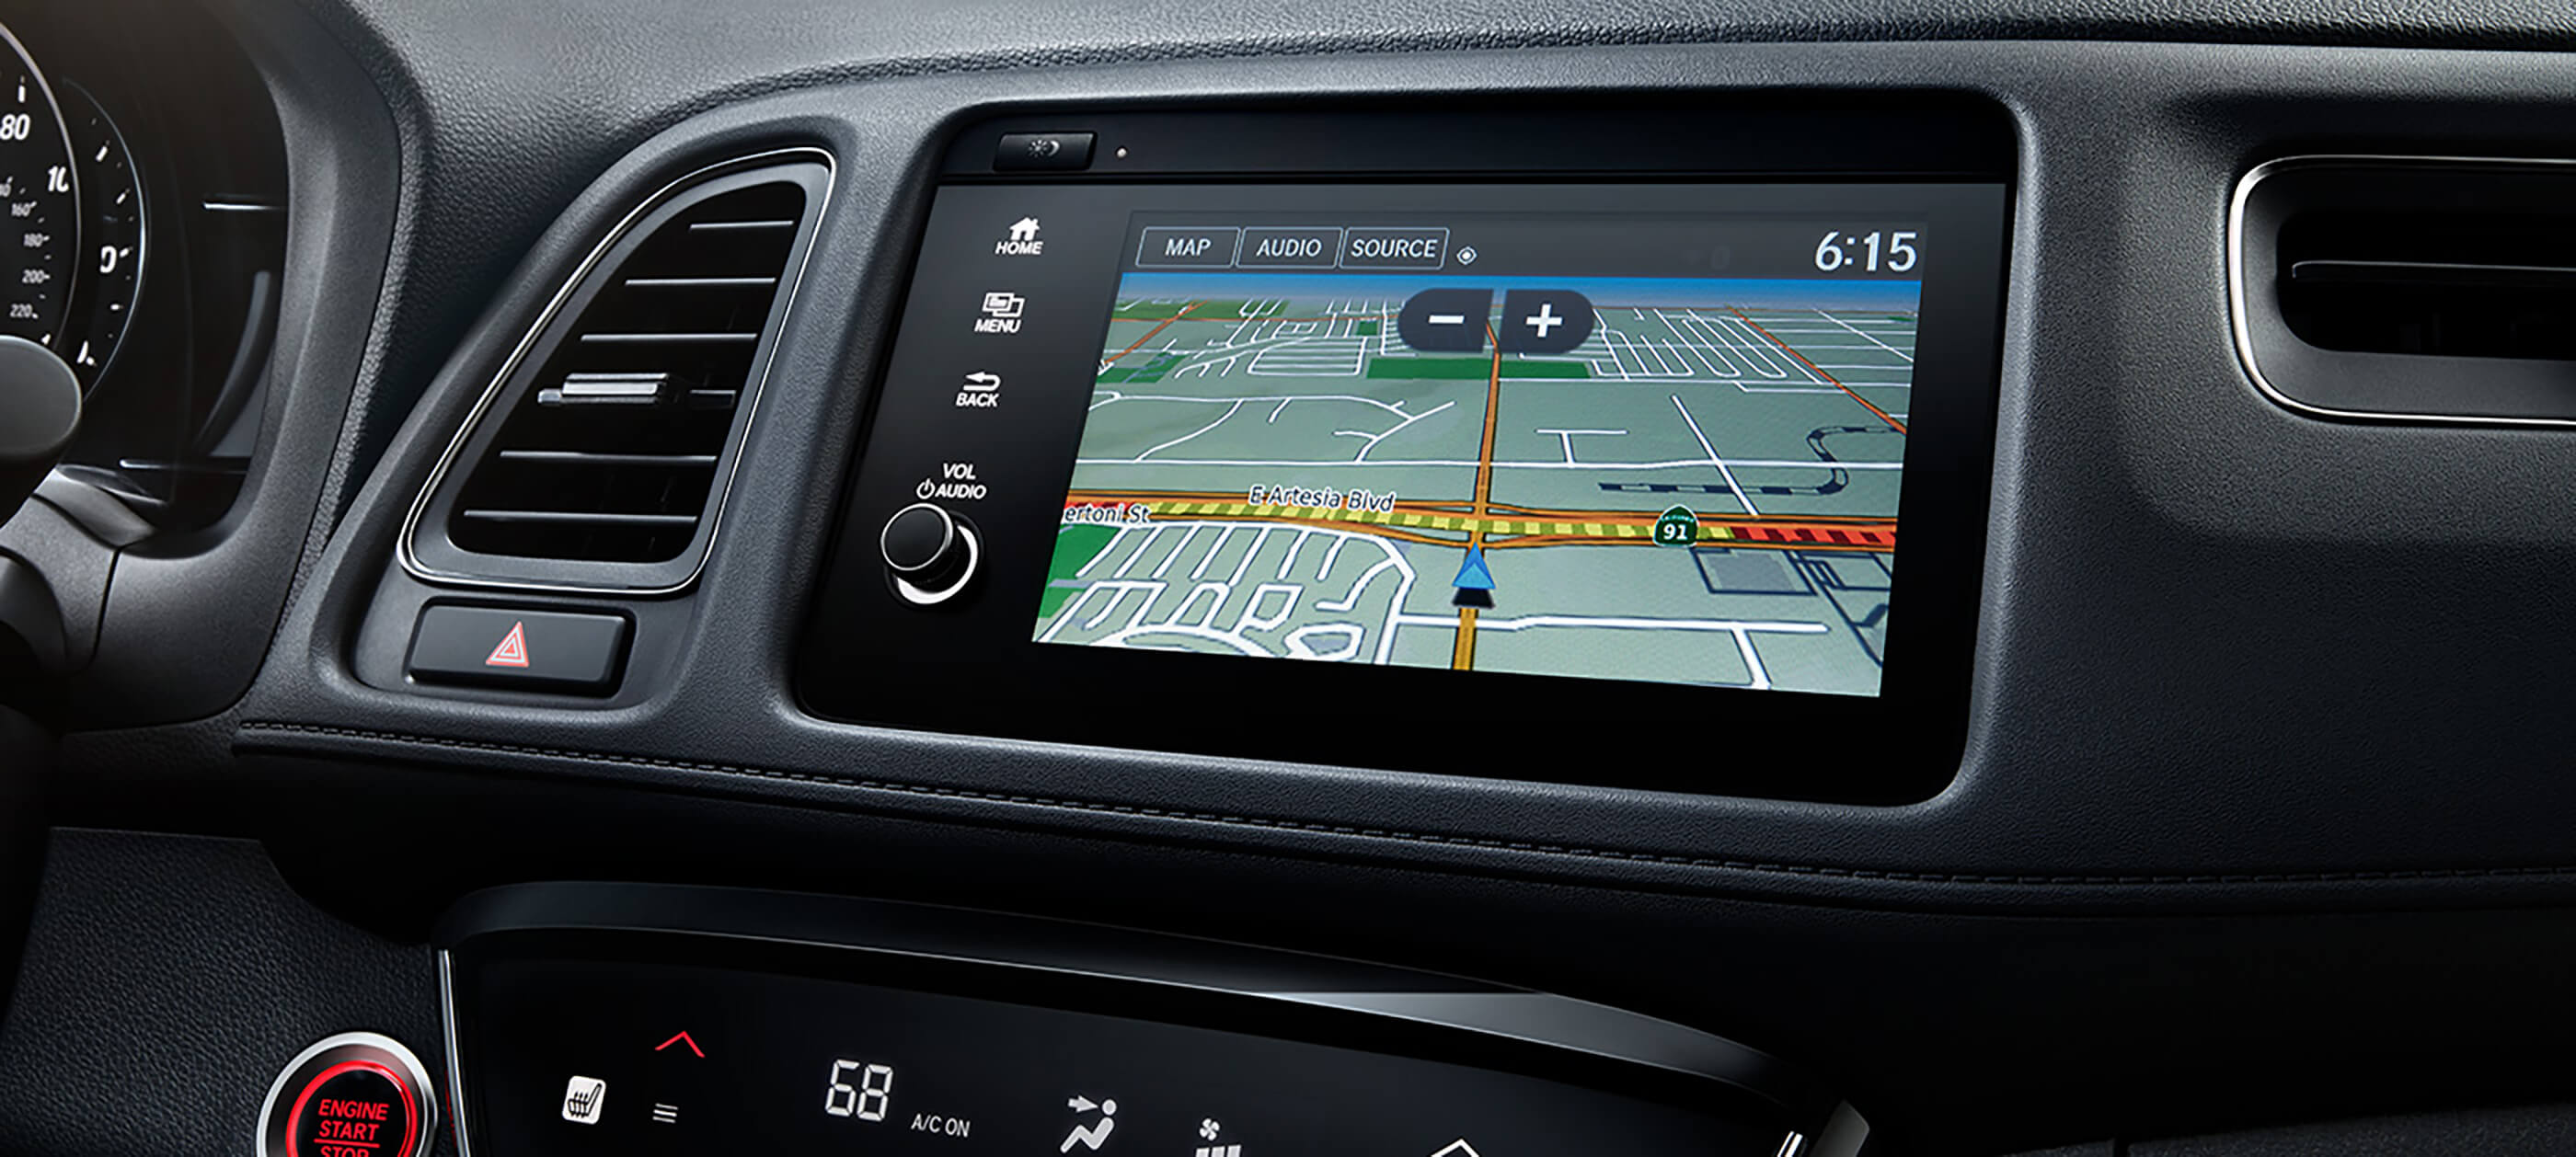 Built-In Navigation